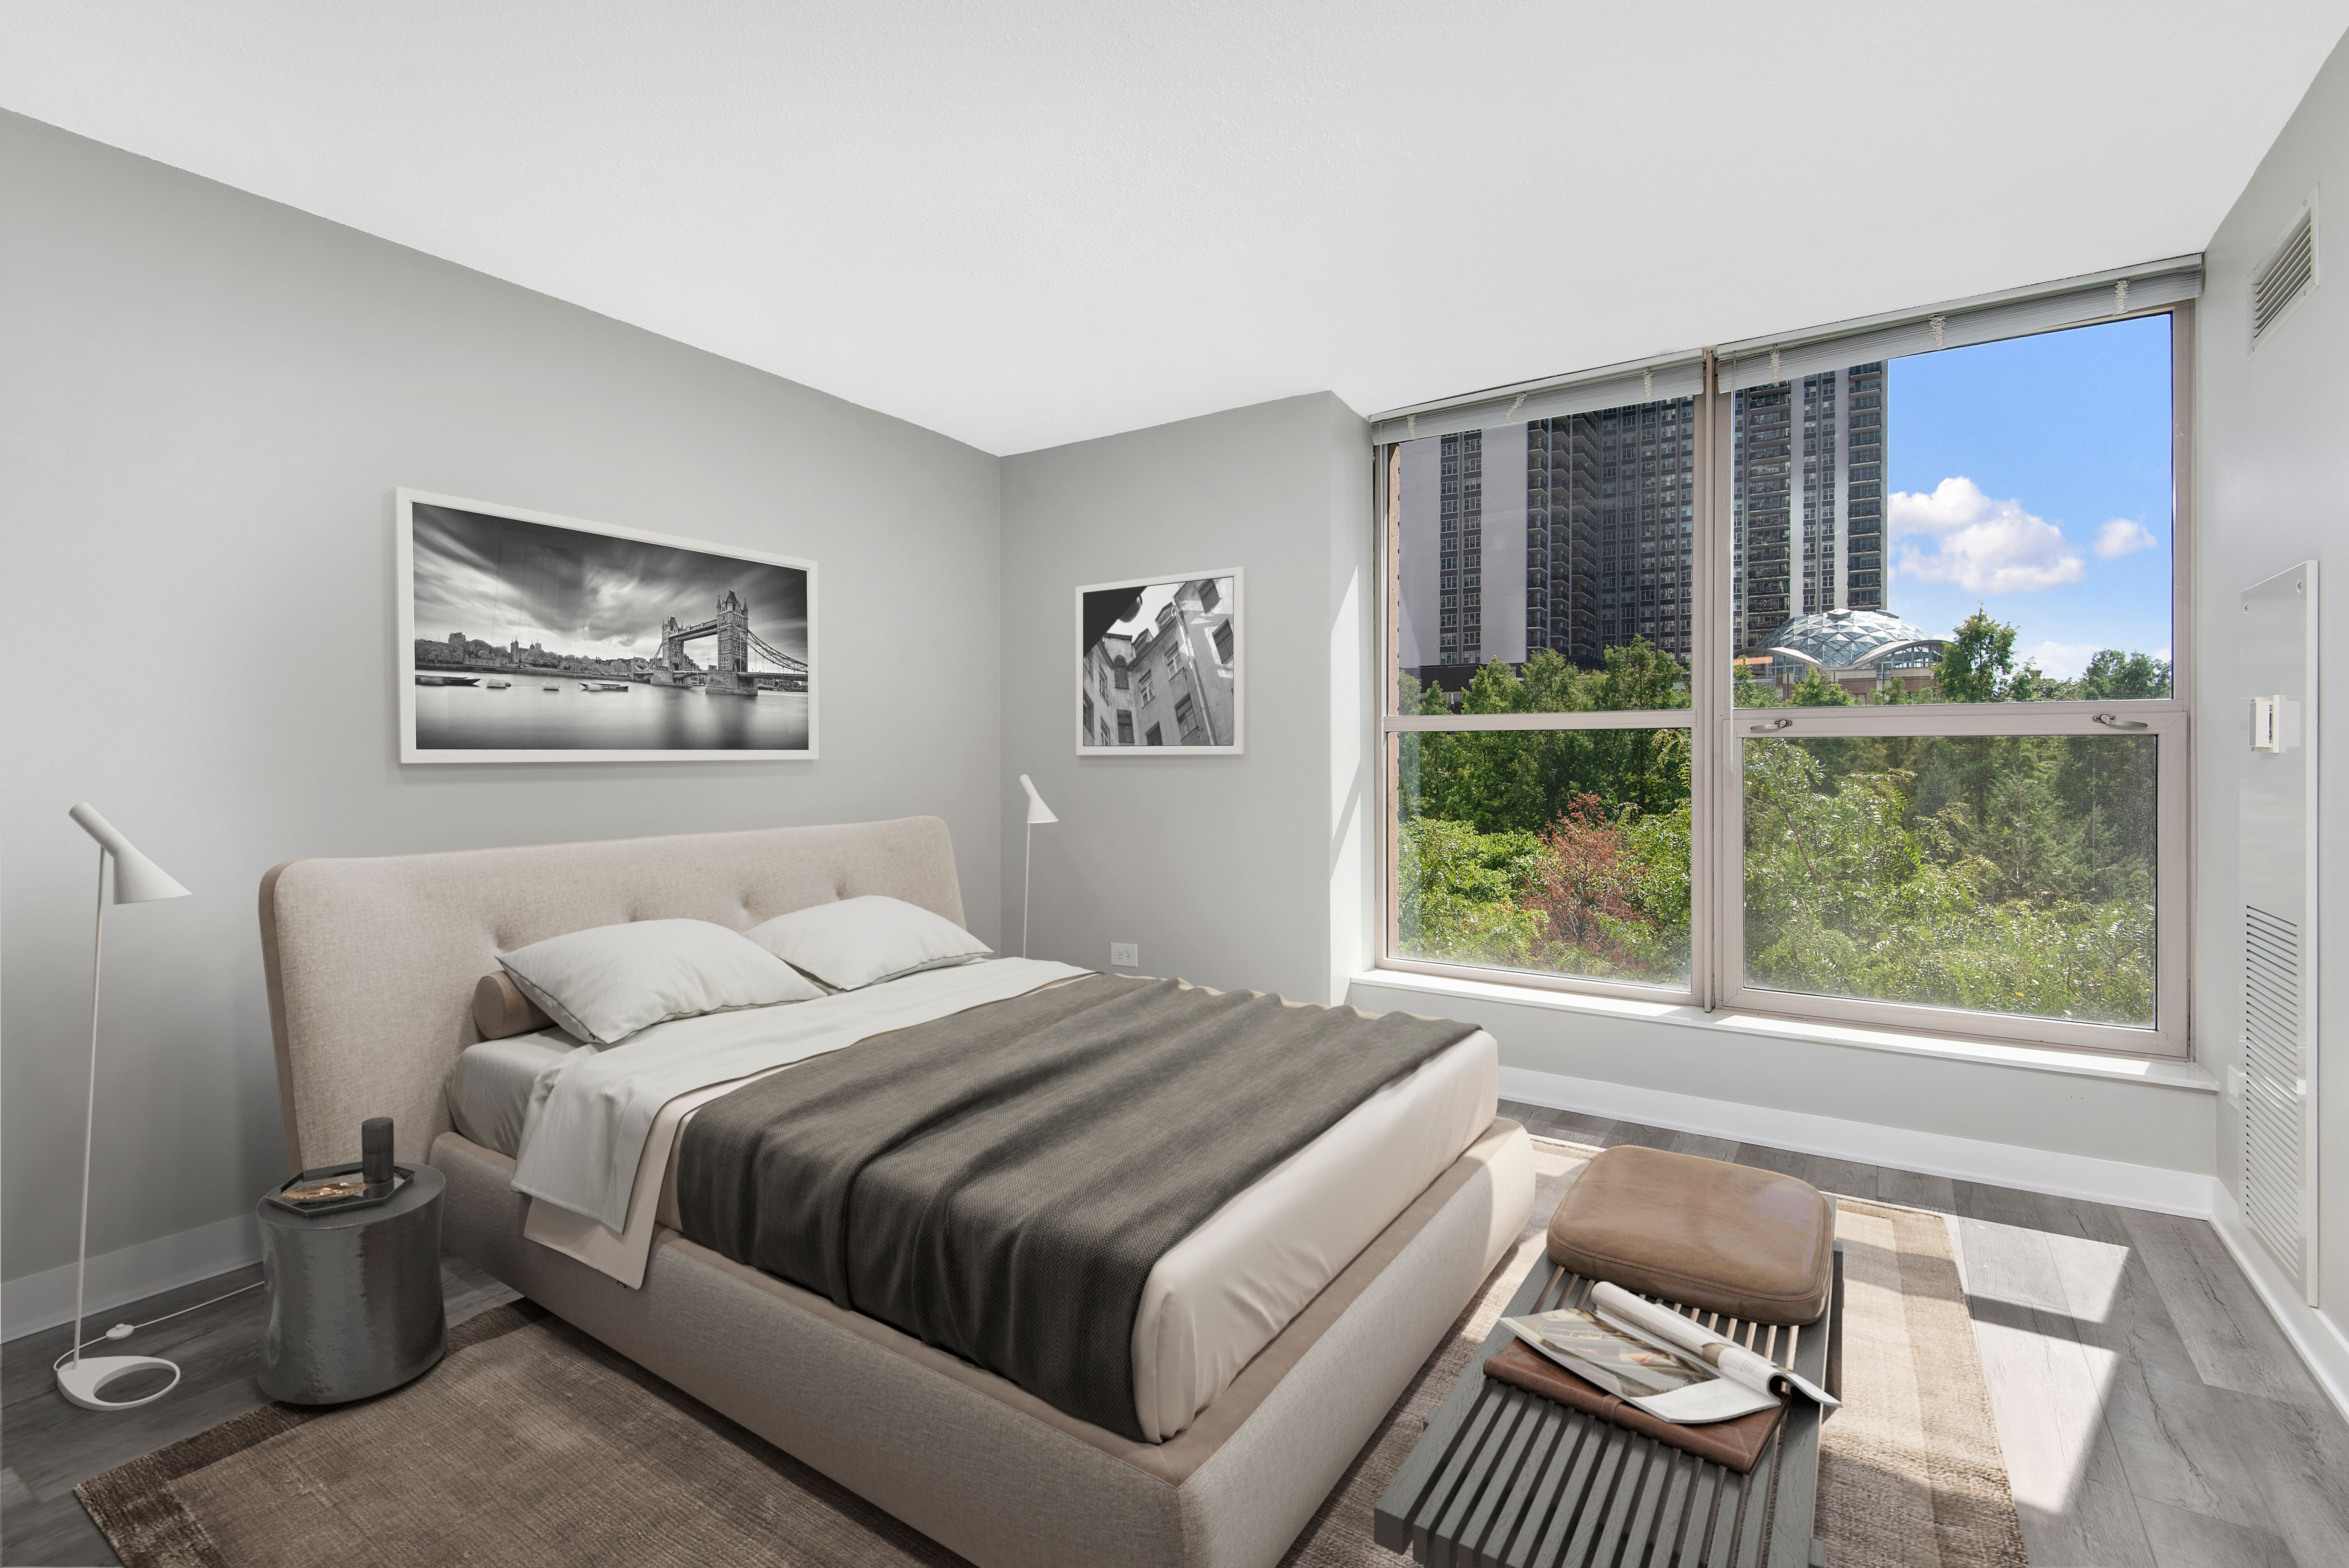 Pin by The Shoreham at Lakeshore East on Apartment Photos